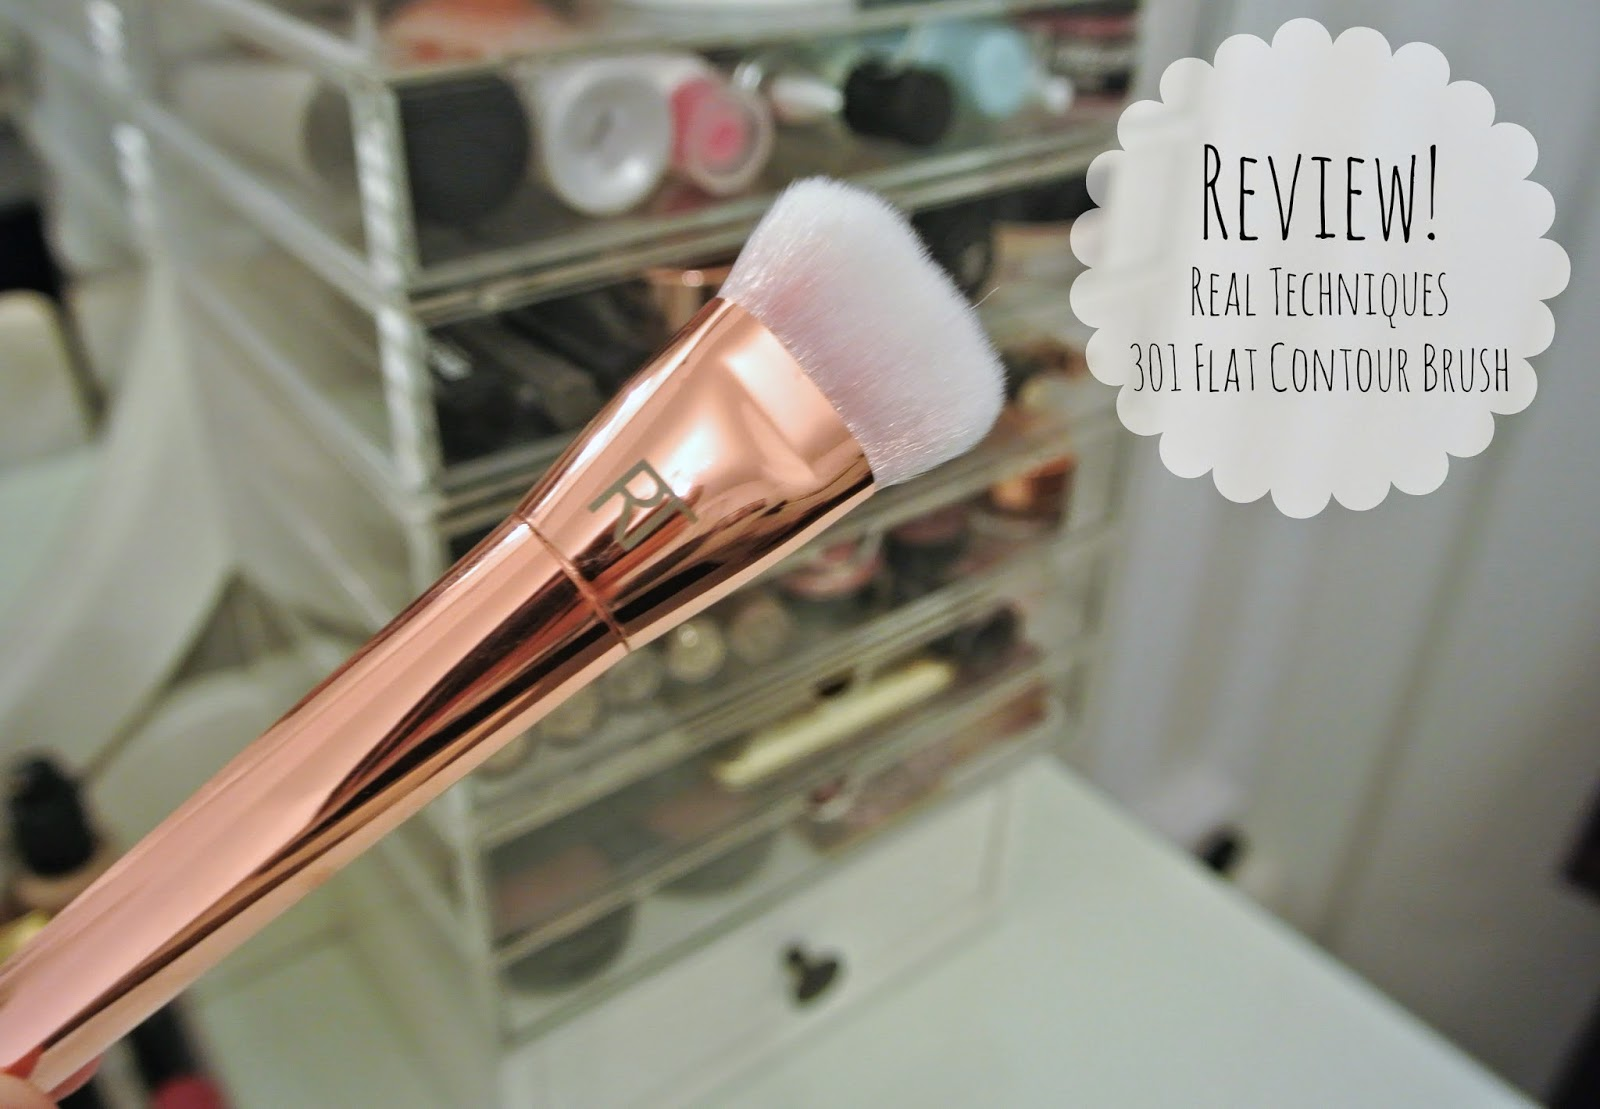 real techniques bold metals contour brush. as soon i saw the bold metals collection featured on real technique\u0027s instagram knew had to have them, more specifically flat contour brush but techniques